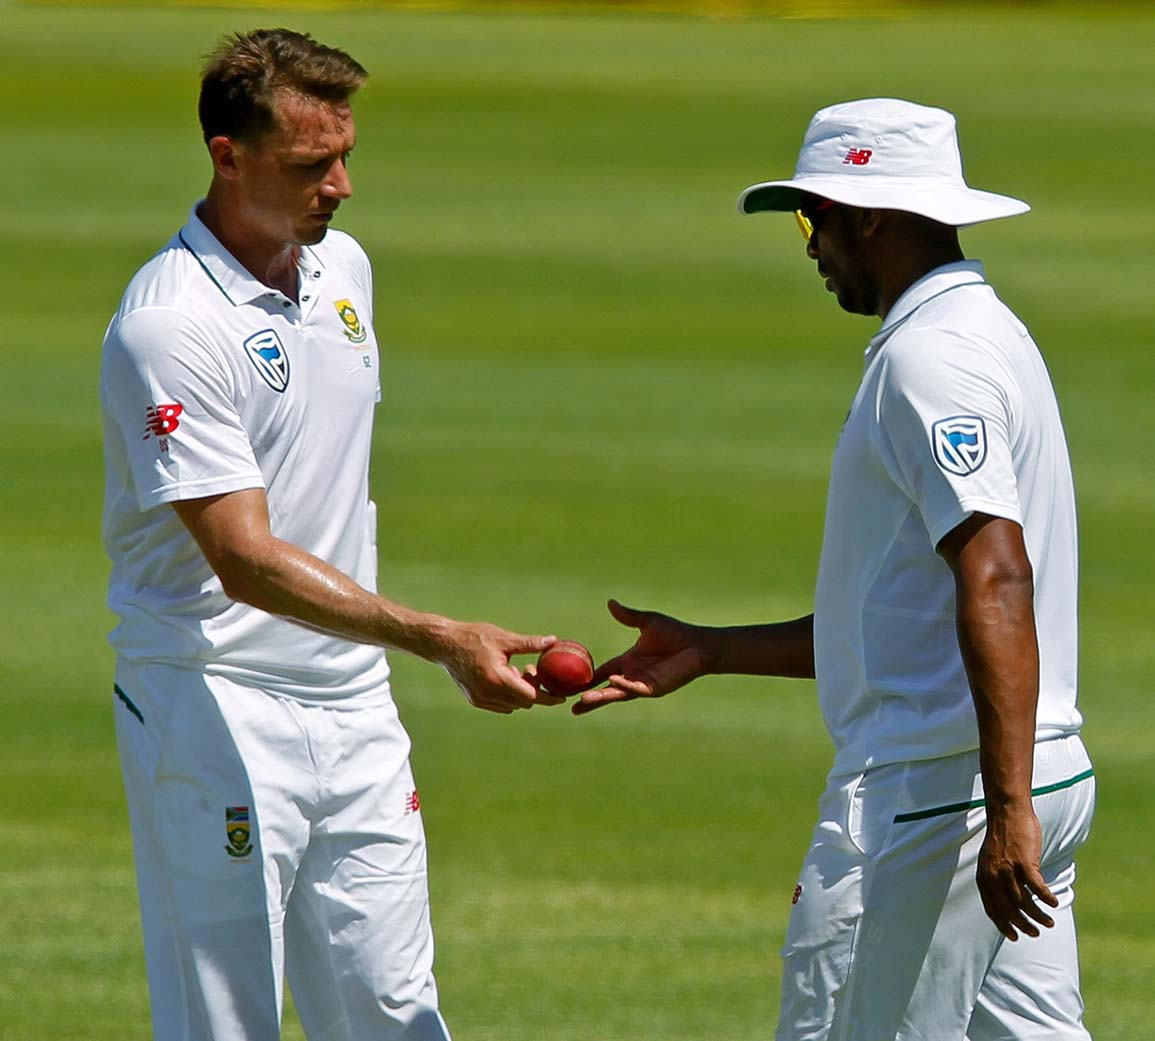 Dale Steyn taken to hospital after injury scare